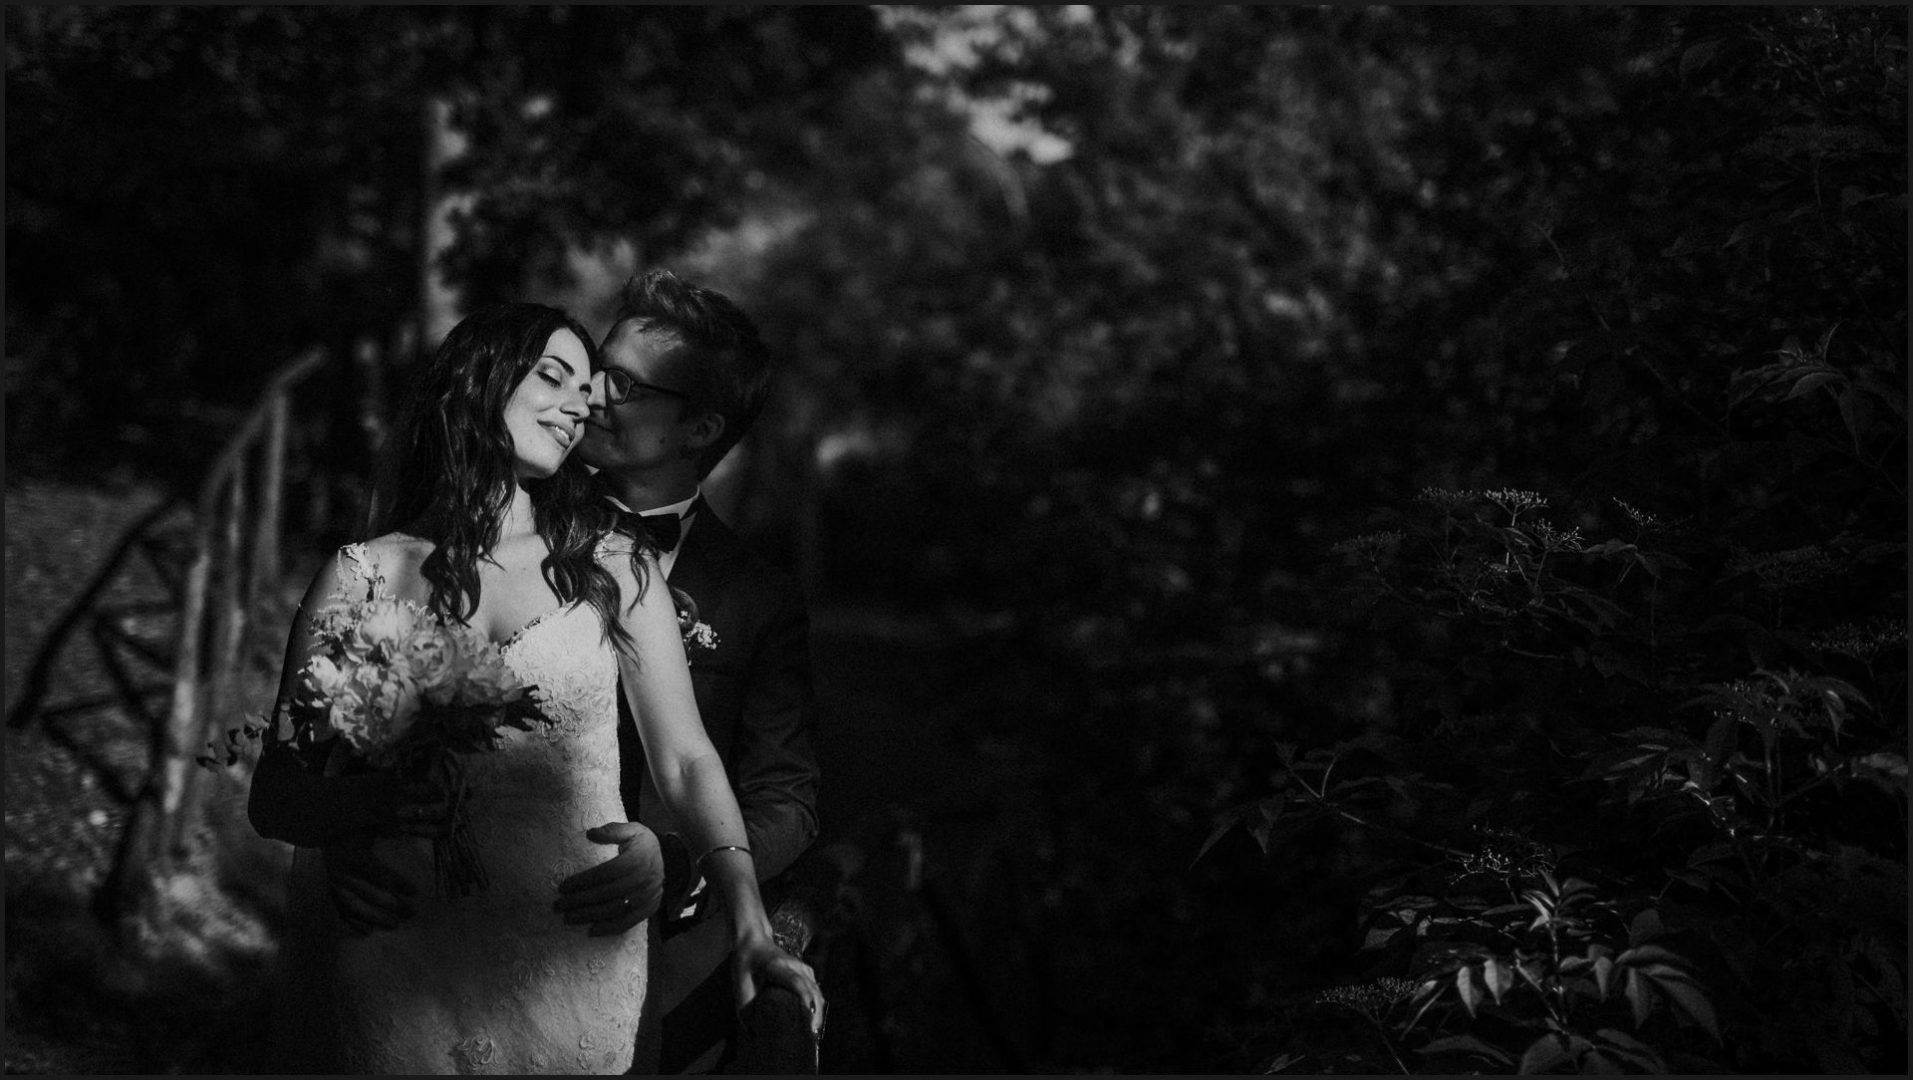 black and white, wedding, umbria, nikis resort, bride, groom,